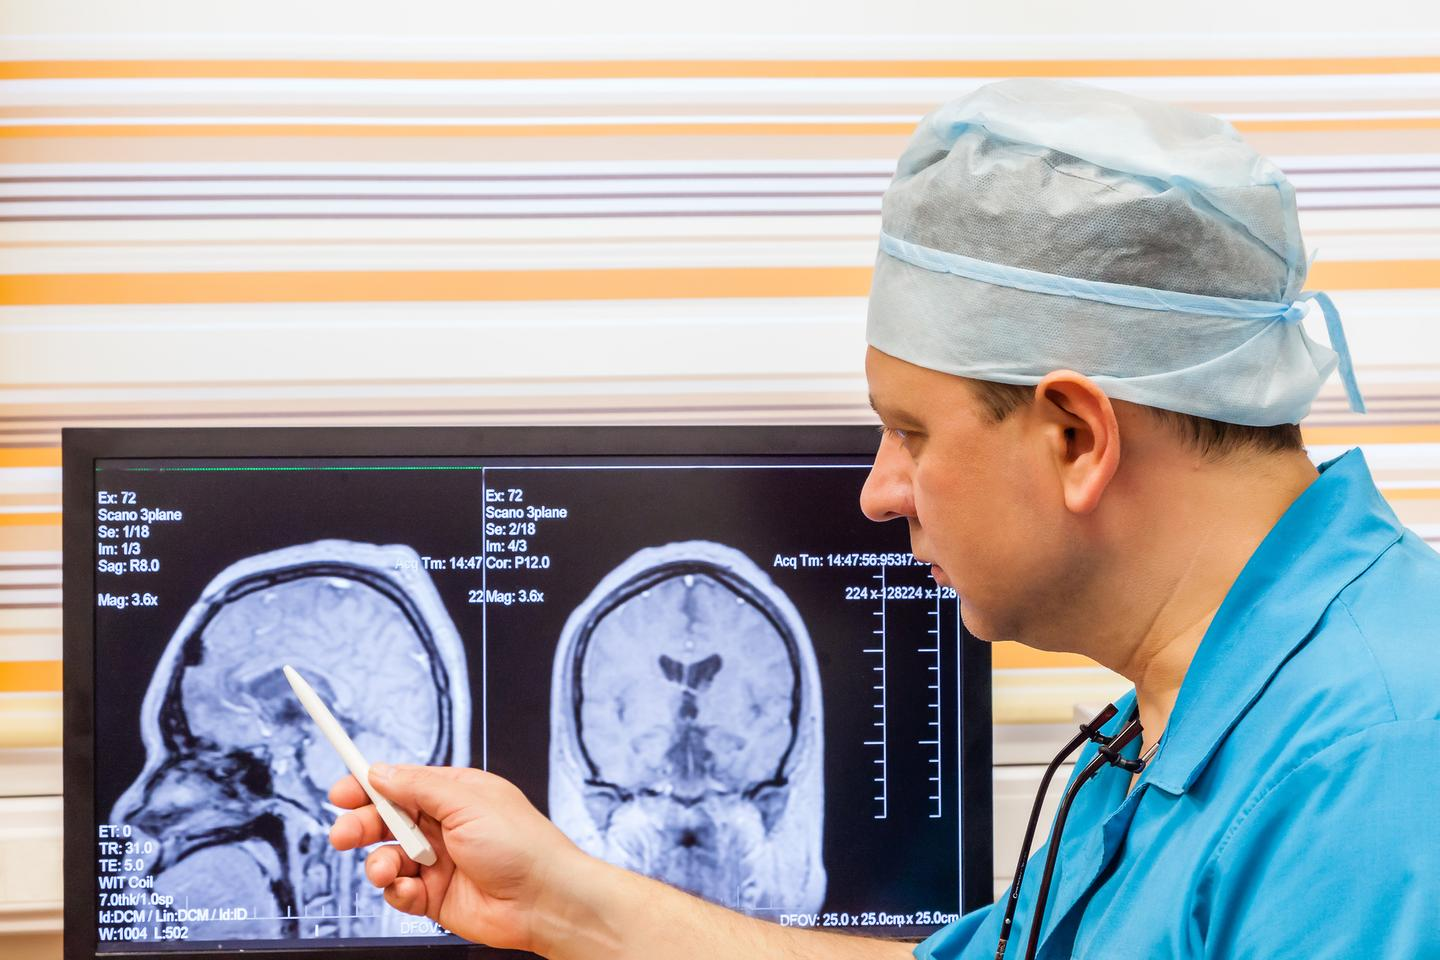 A novel implantable ultrasound device could soon give doctors another weapon to fight brain cancers